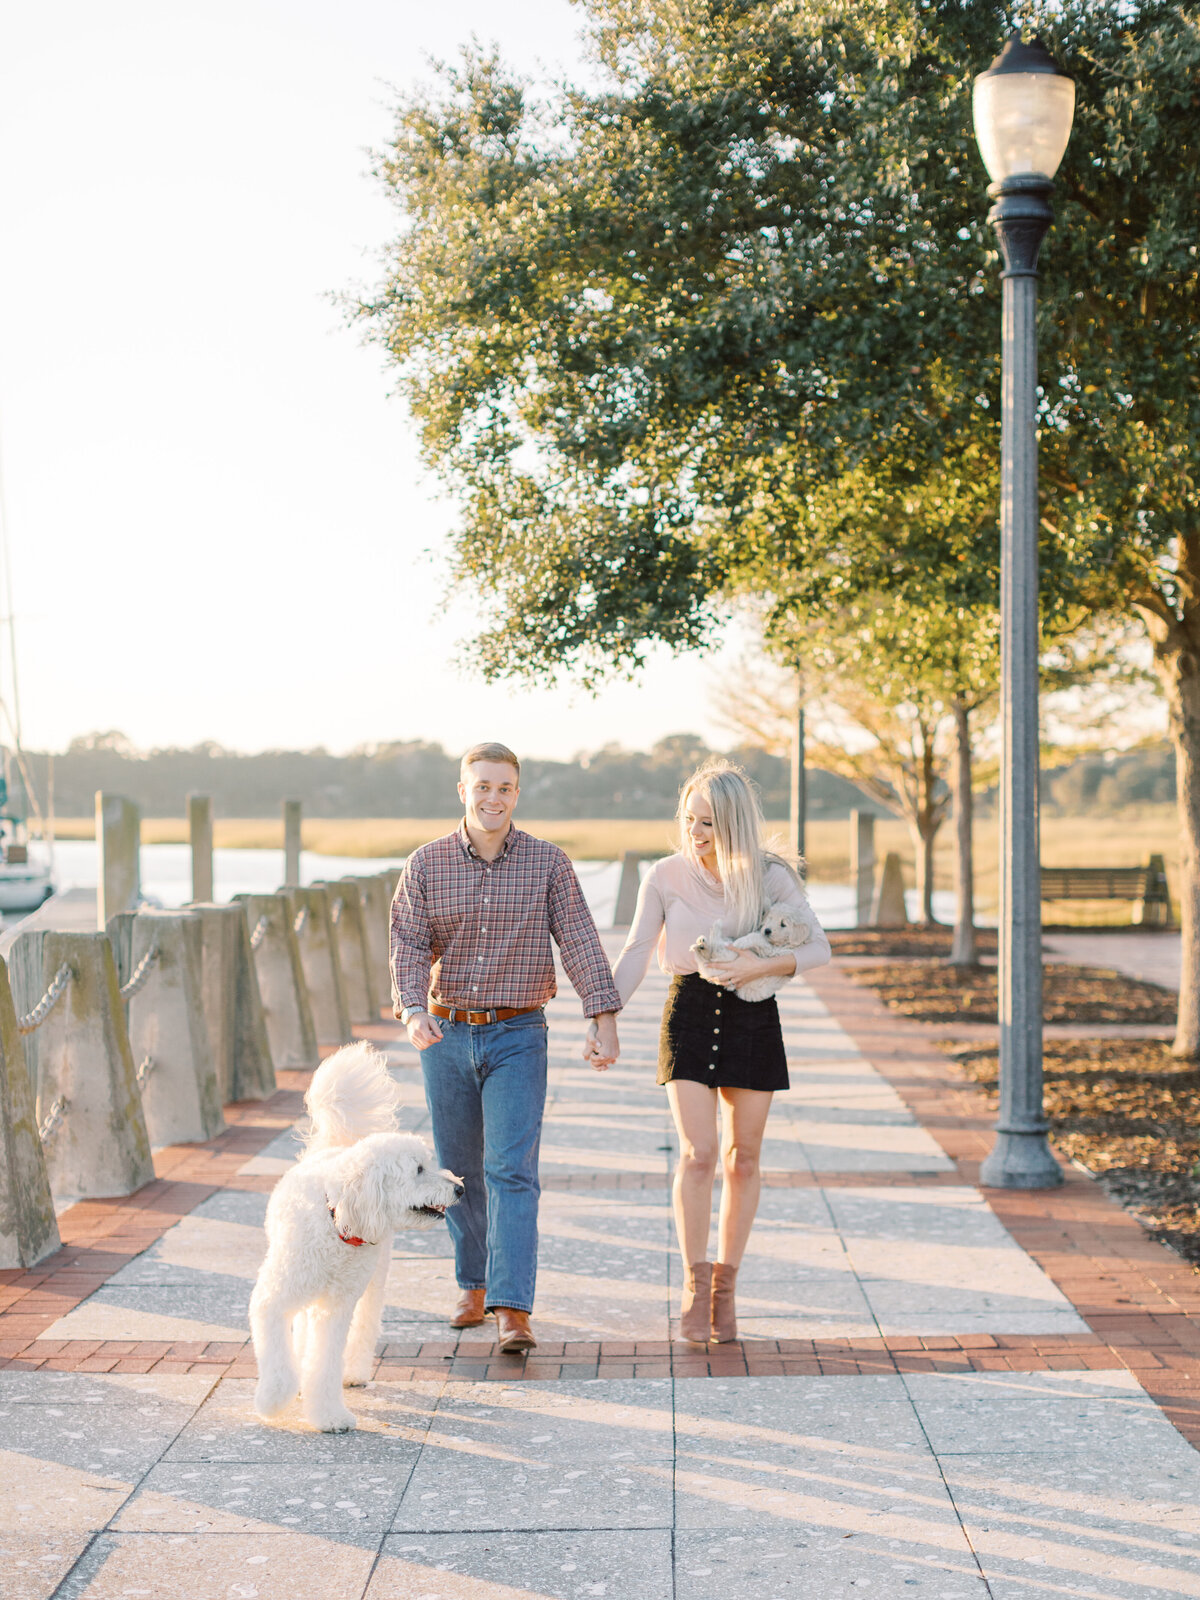 Caroline + Martin | Beaufort Lowcountry | Charleston Wedding Photographer | Savannah Wedding Photographer | Santa Barbara Wedding Photographer | Beaufort Wedding Photographer-6